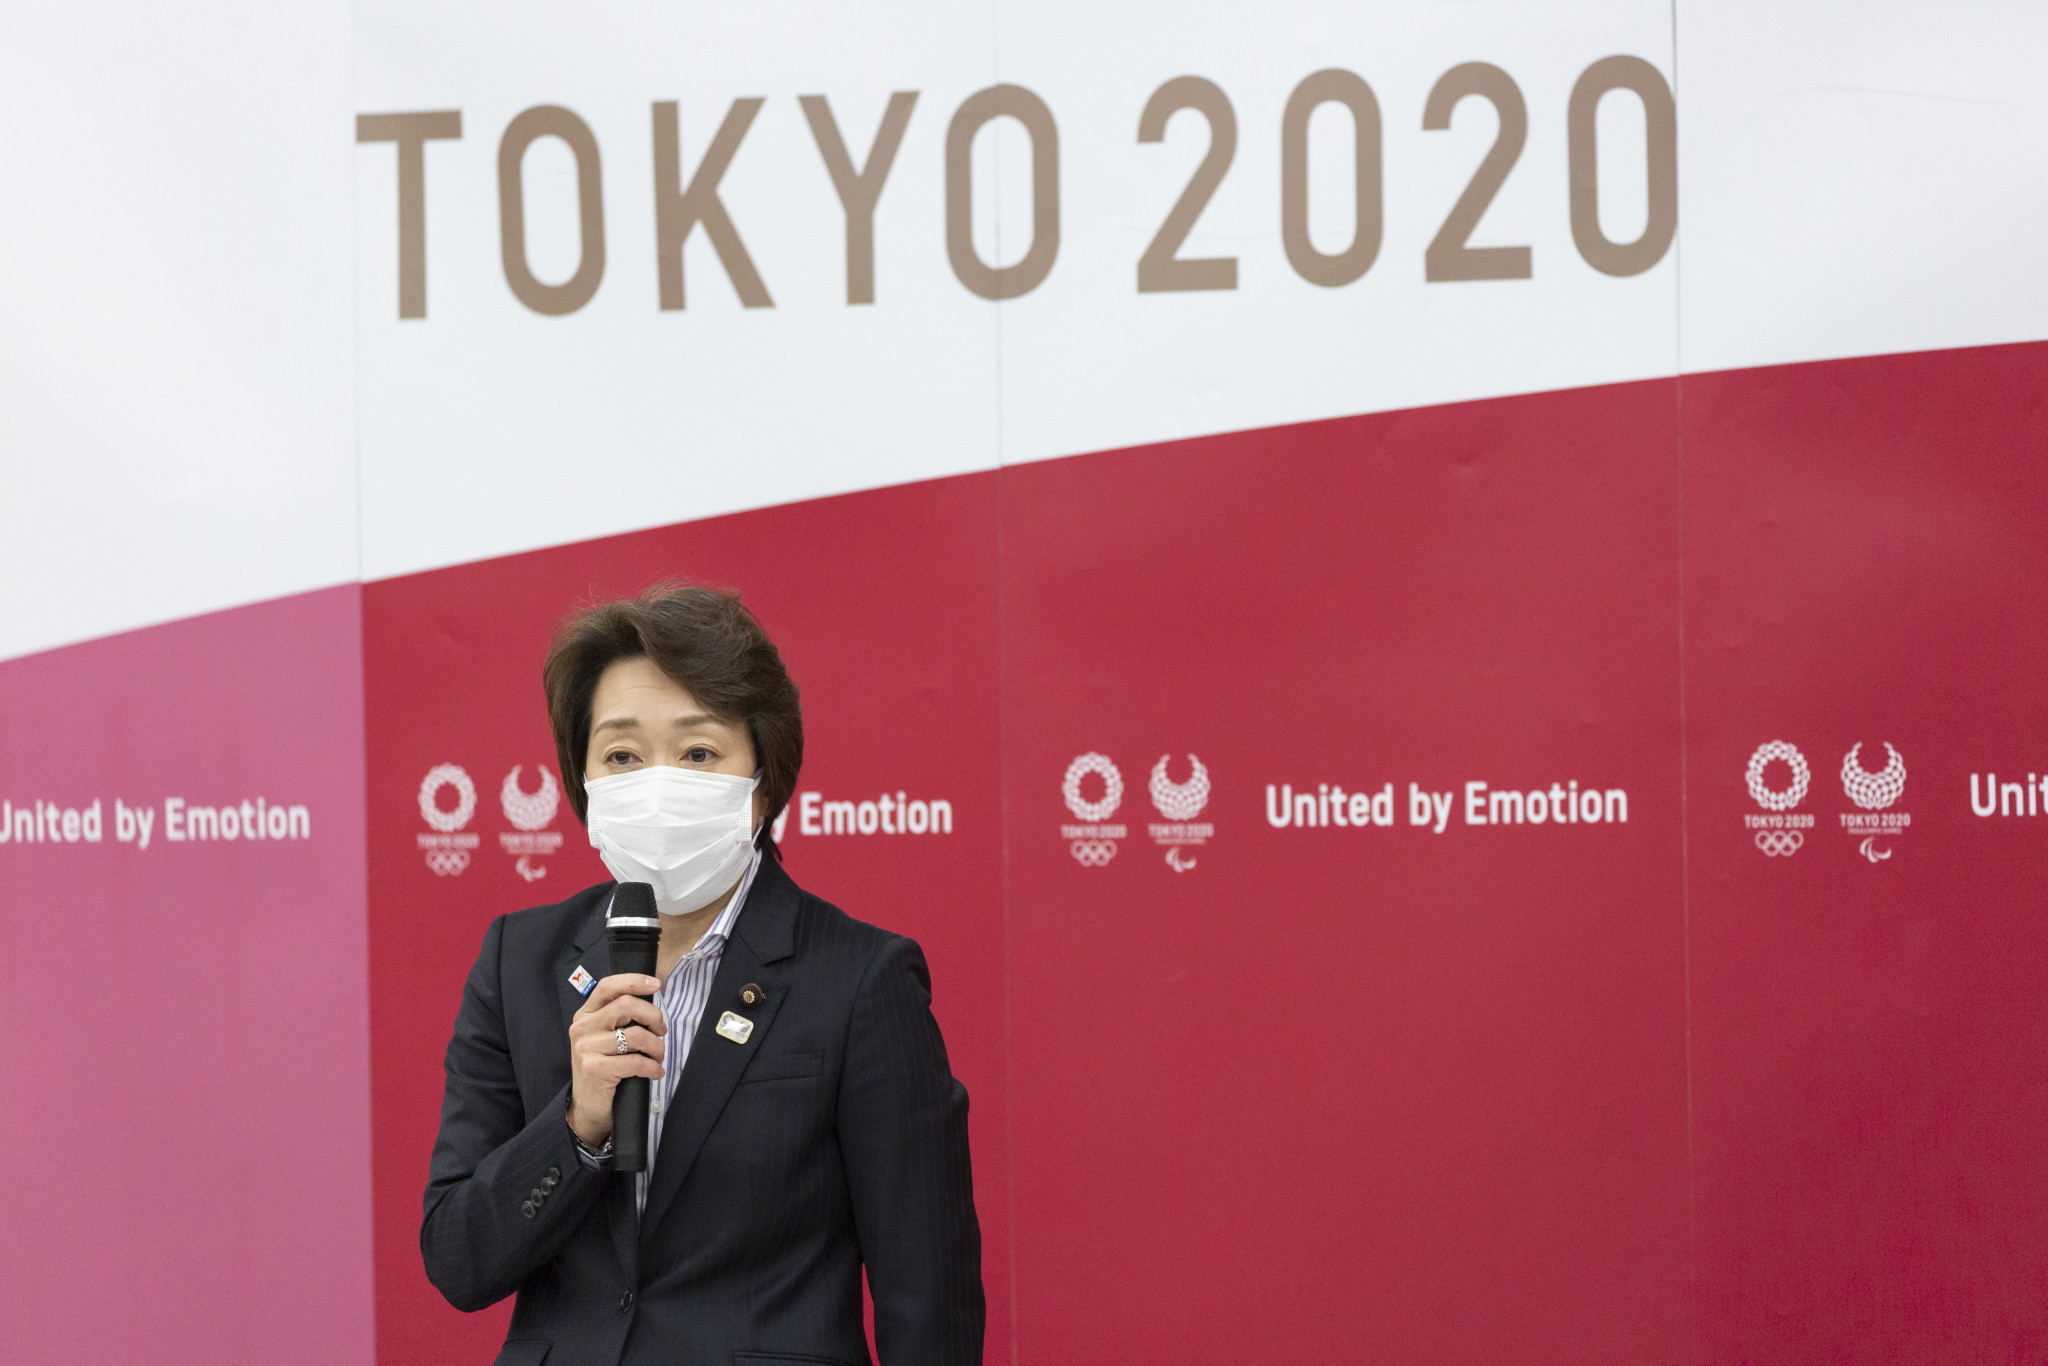 Tokyo 2020 President Hashimoto to exclude Mori from official positions